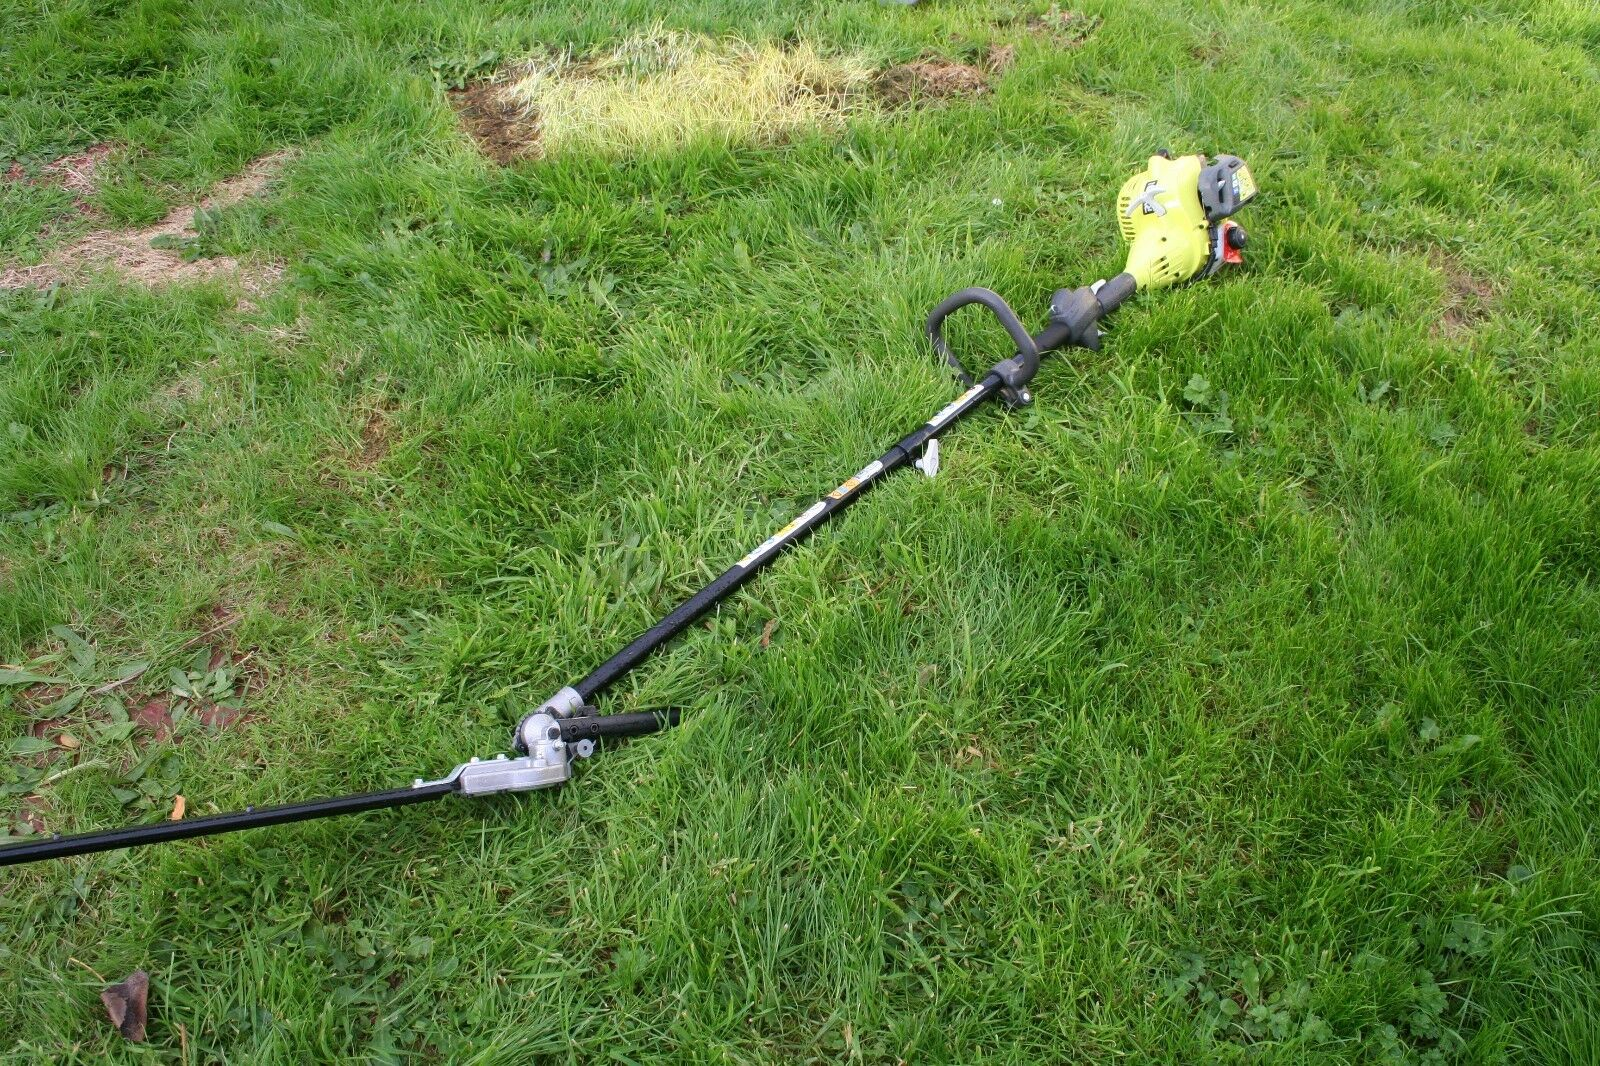 ryobi 26cc long reach hedge trimmer-good used condition.. - eur 146